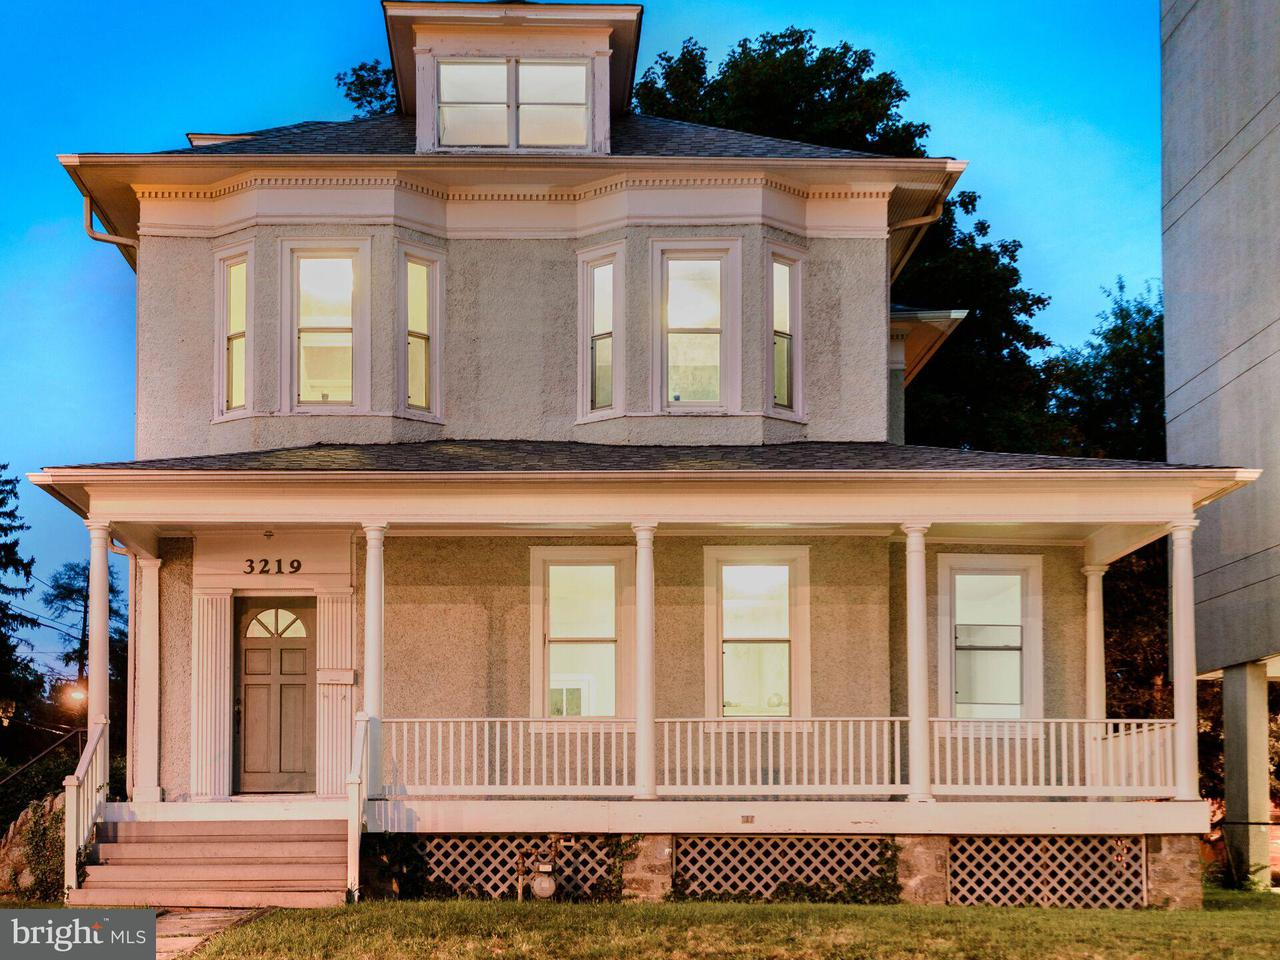 Single Family Home for Sale at 3219 Wisconsin Ave Nw 3219 Wisconsin Ave Nw Washington, District Of Columbia 20016 United States